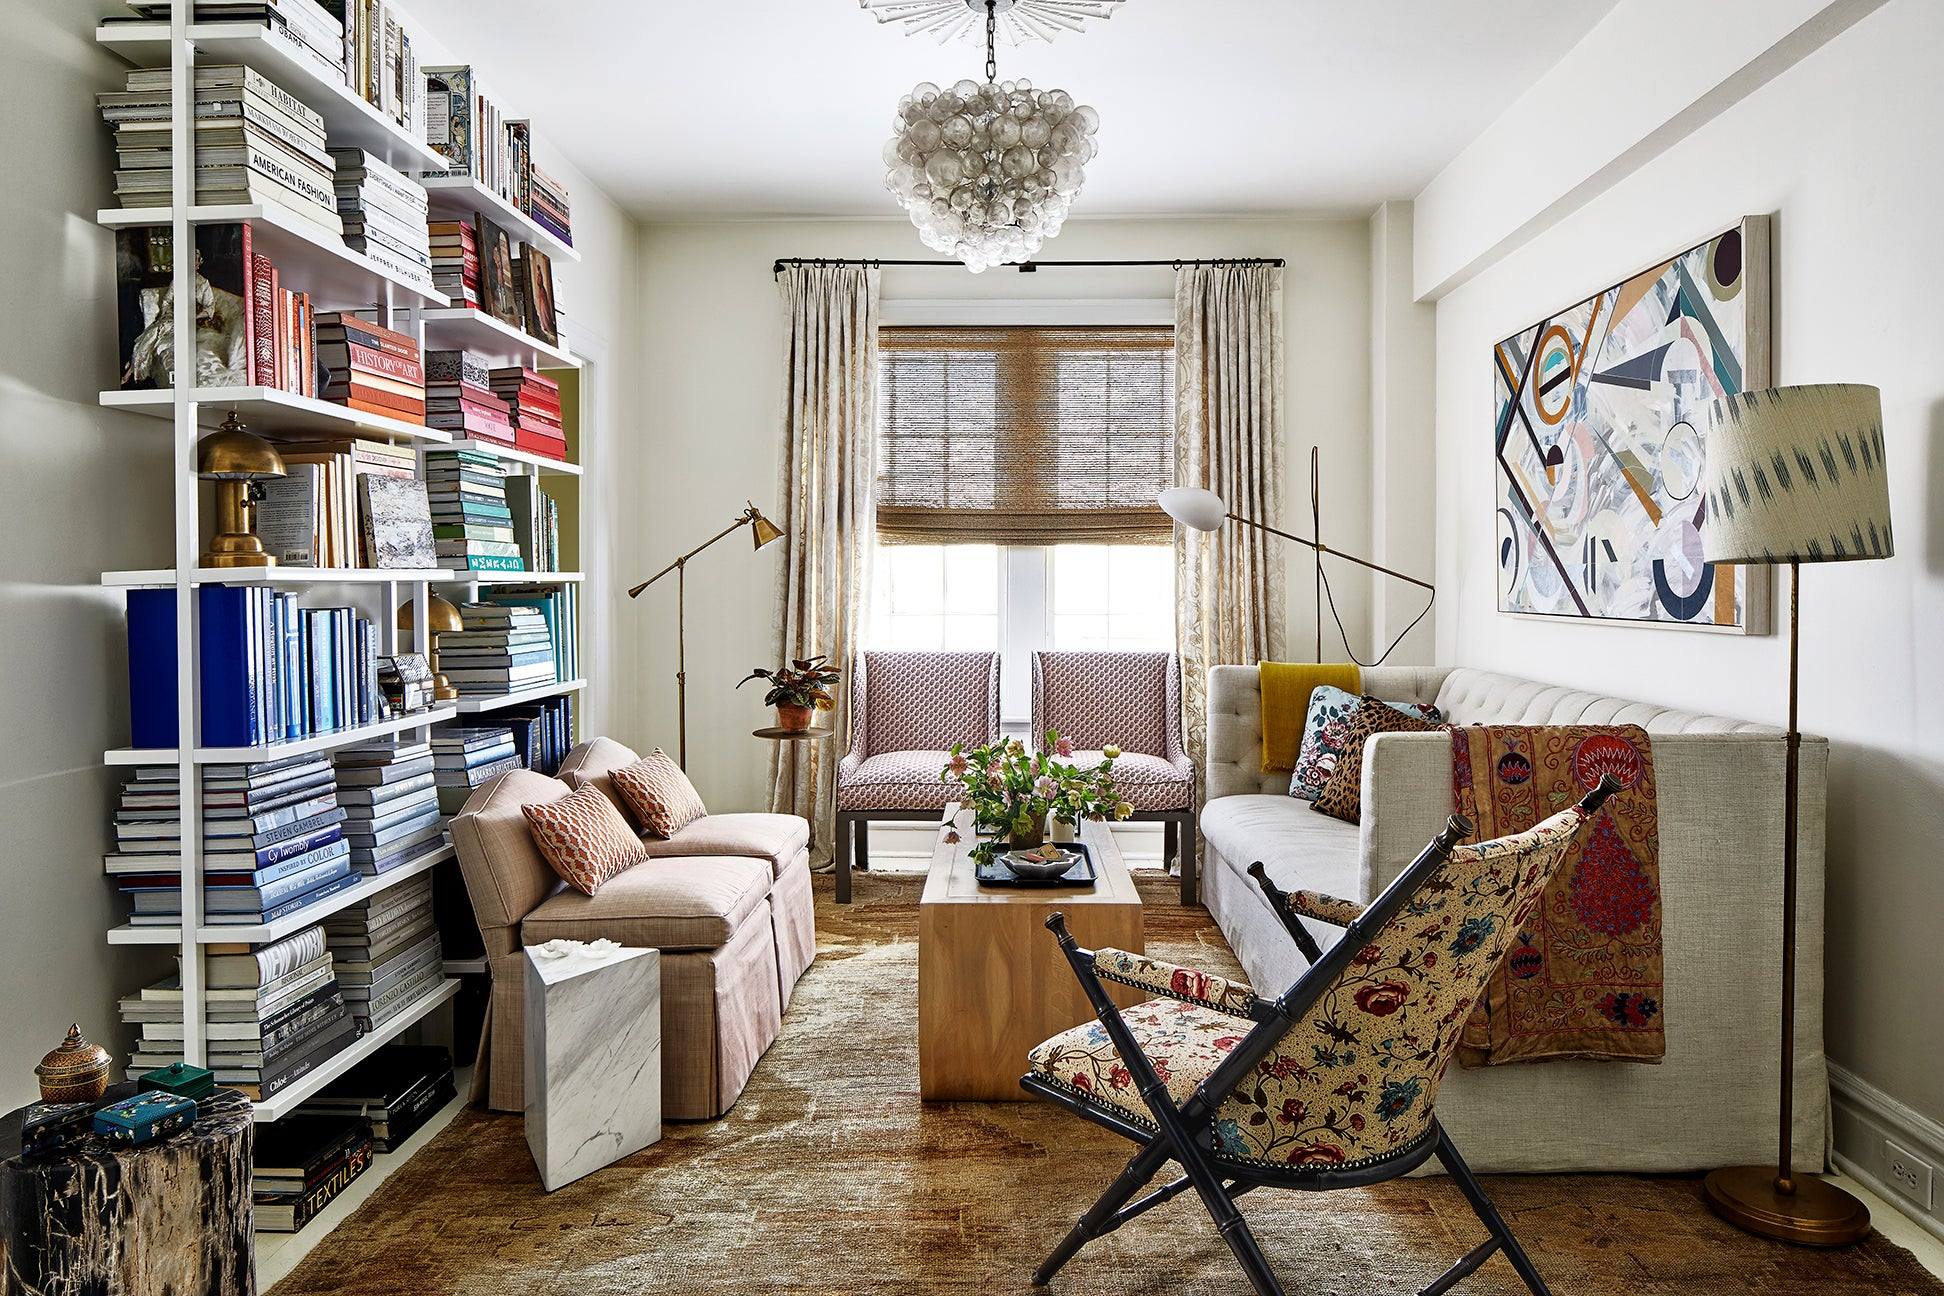 living room with color coordinated books on a shelf